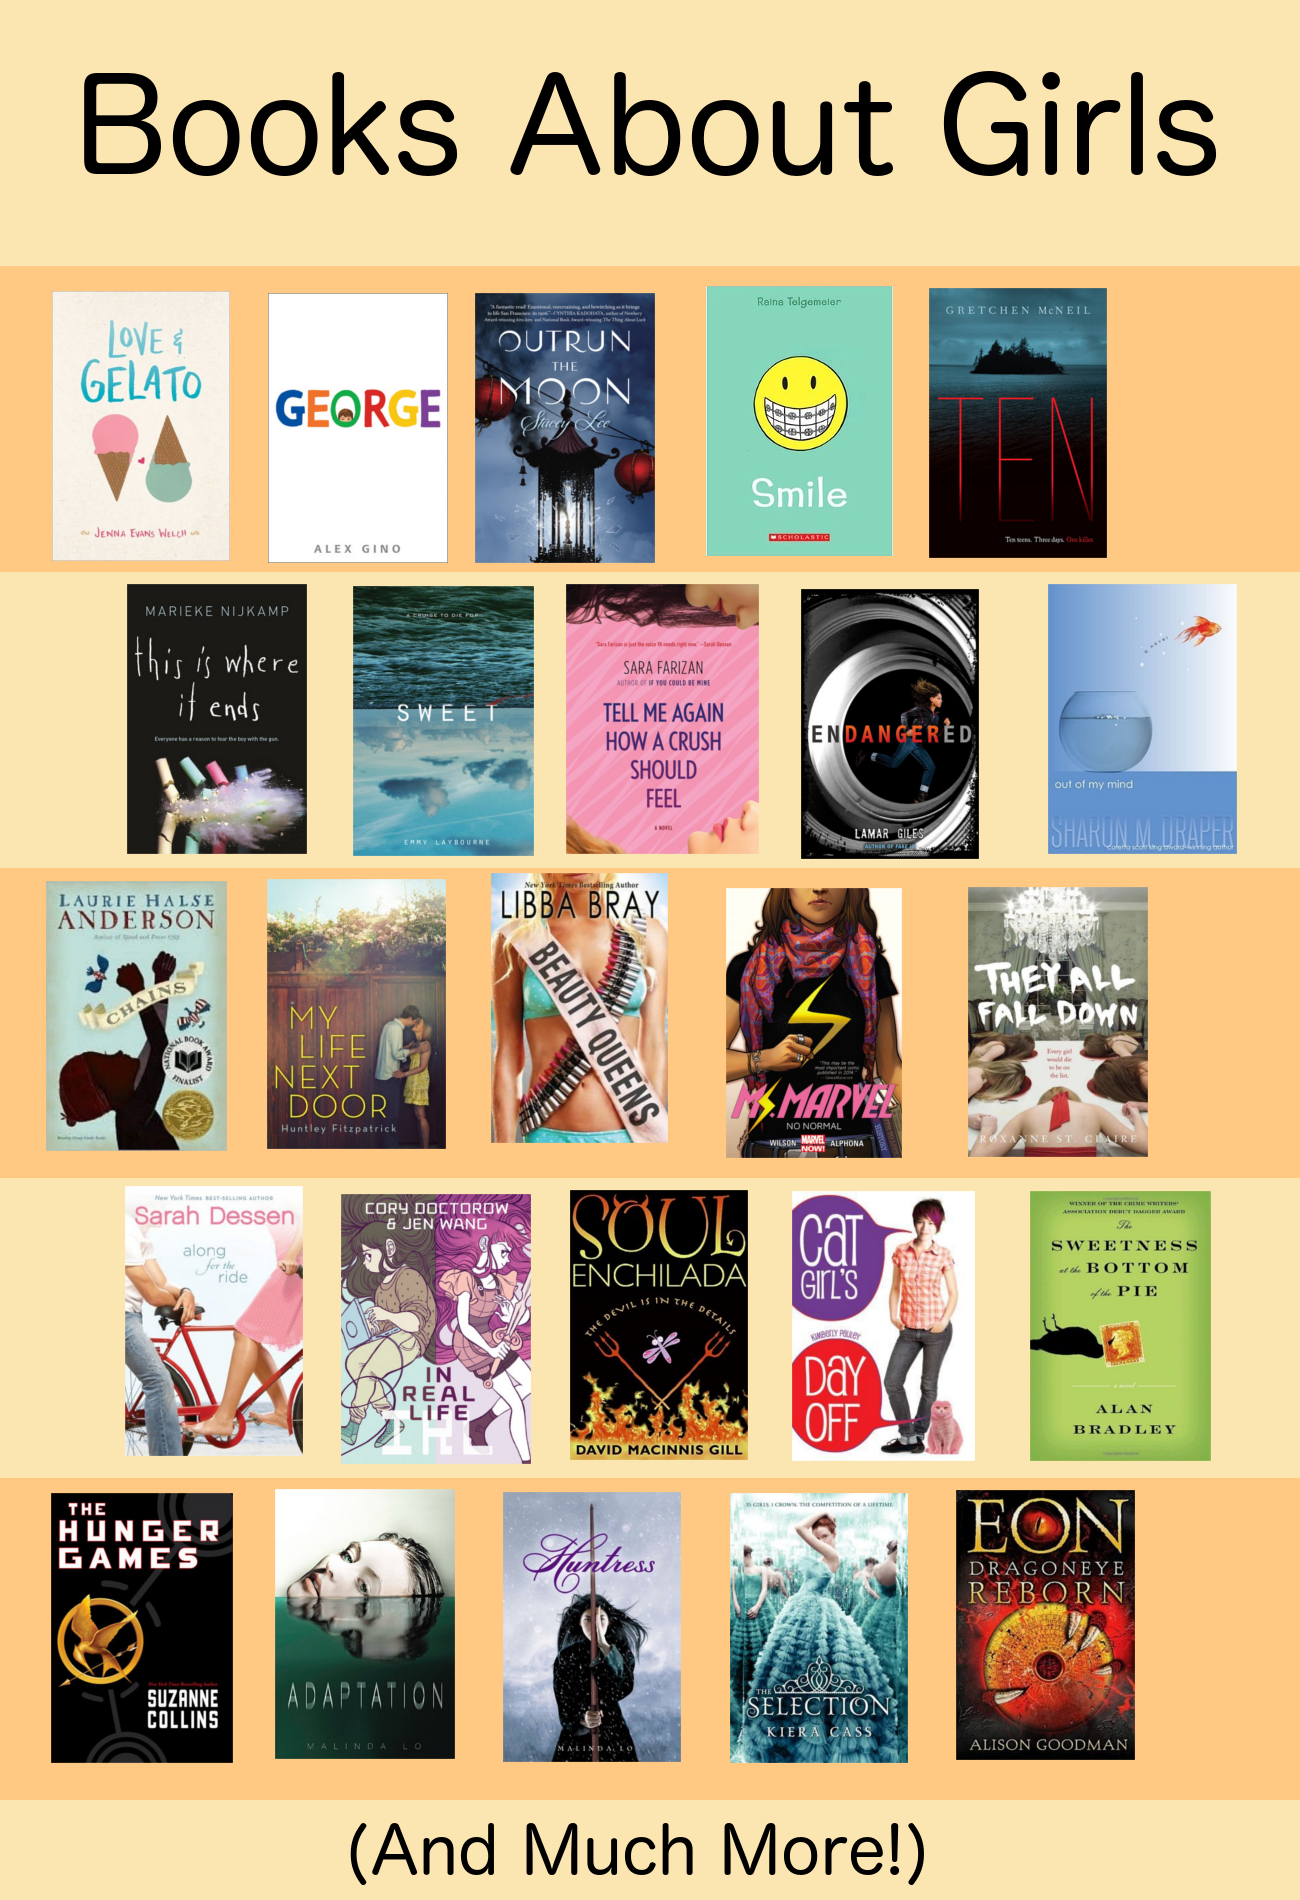 twenty-five books, titles listed later in this post